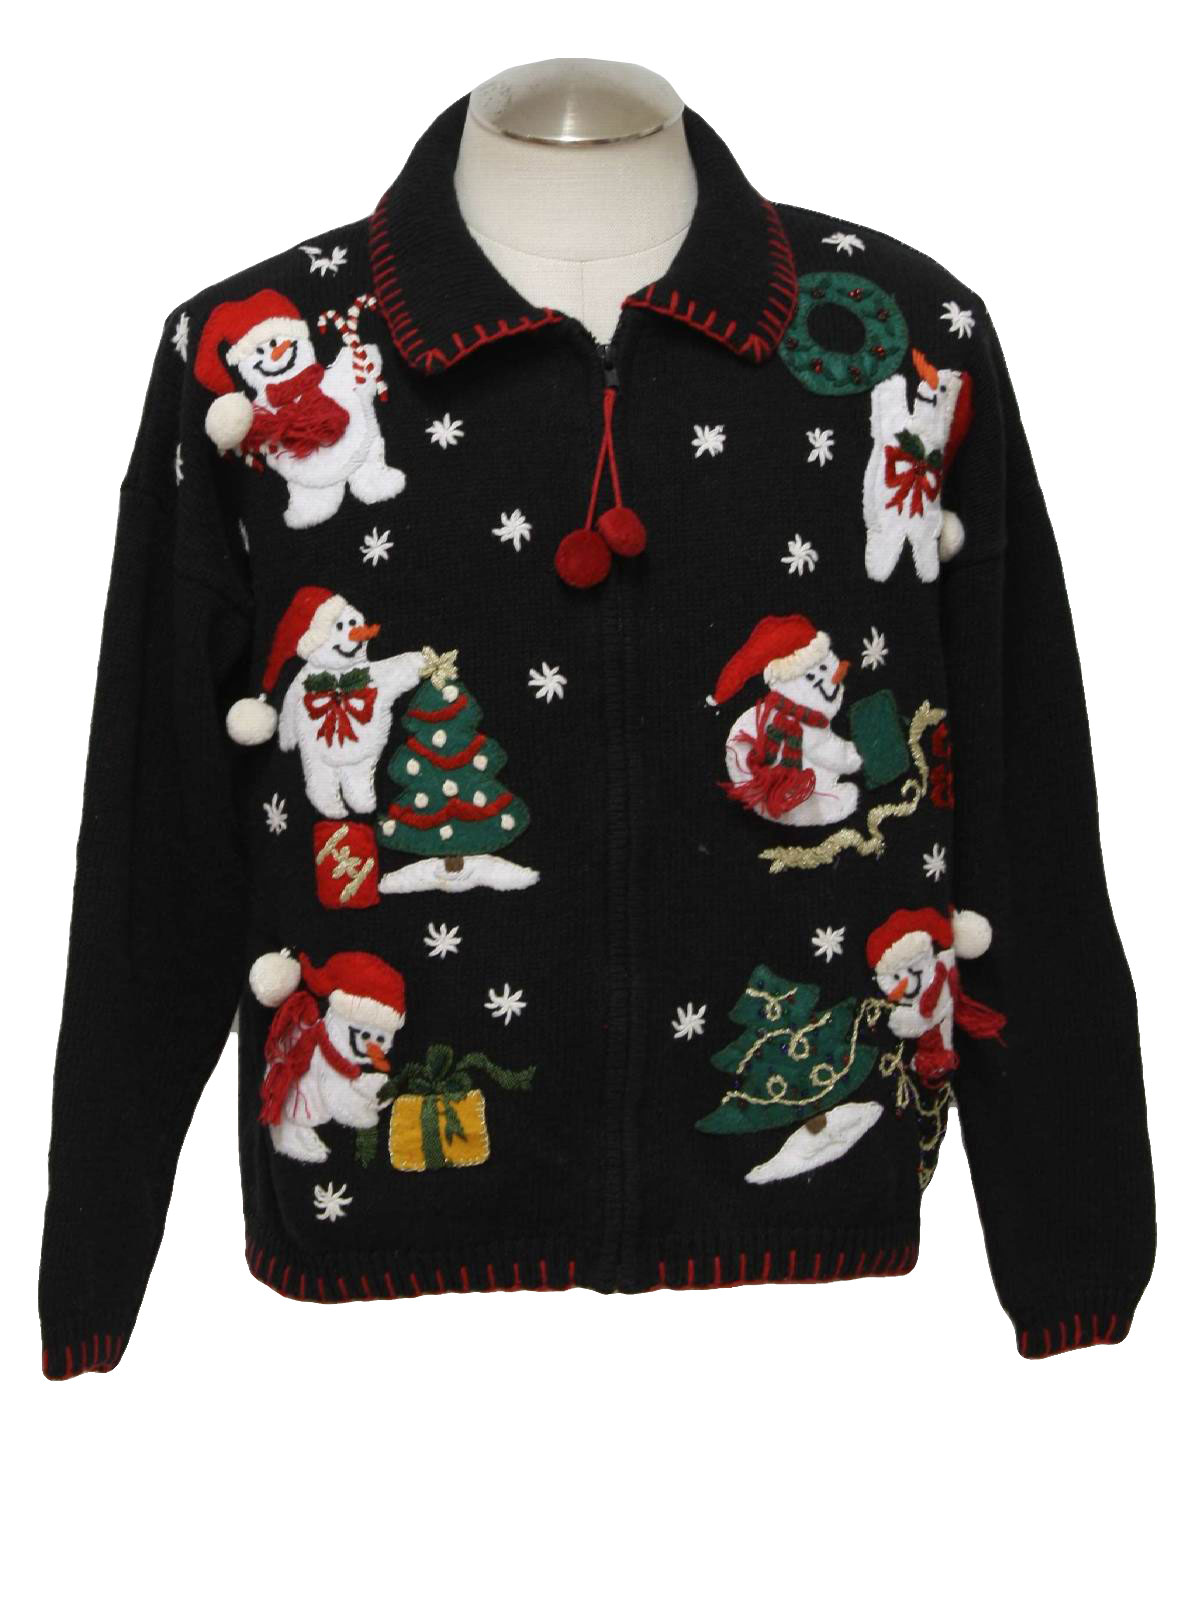 Womens ugly christmas sweater heirloom collectables for Over the top ugly christmas sweaters